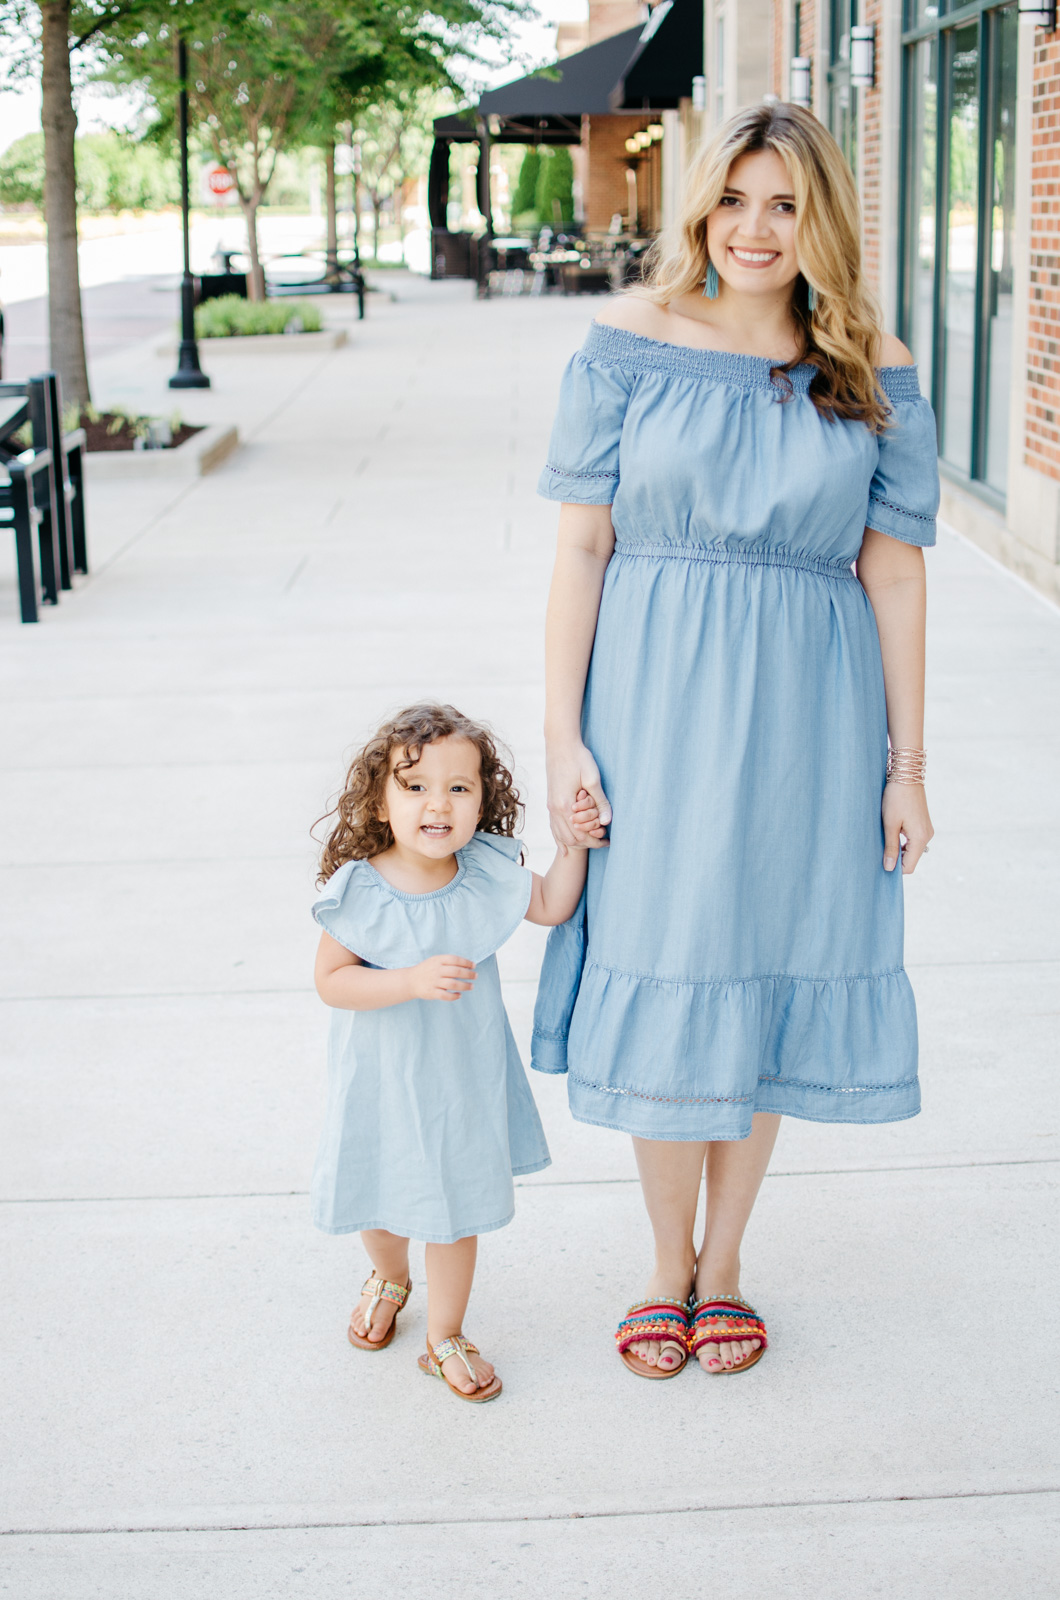 summer mommy daughter outfits - chambray dress | For more cute mom daughter outfits, head to bylaurenm.com!